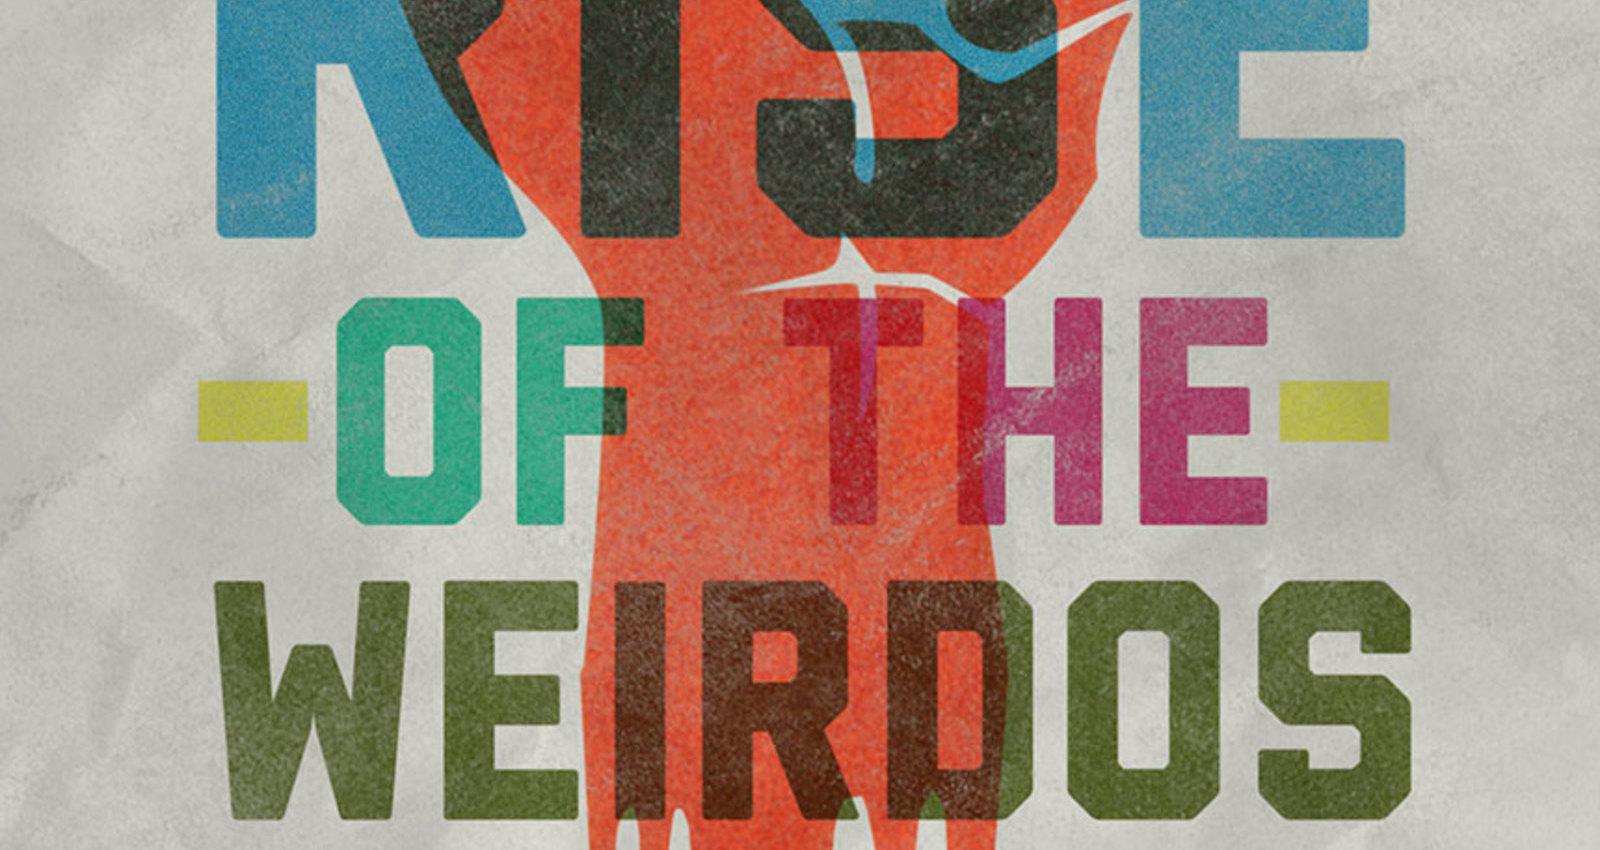 Rise of the Weirdos